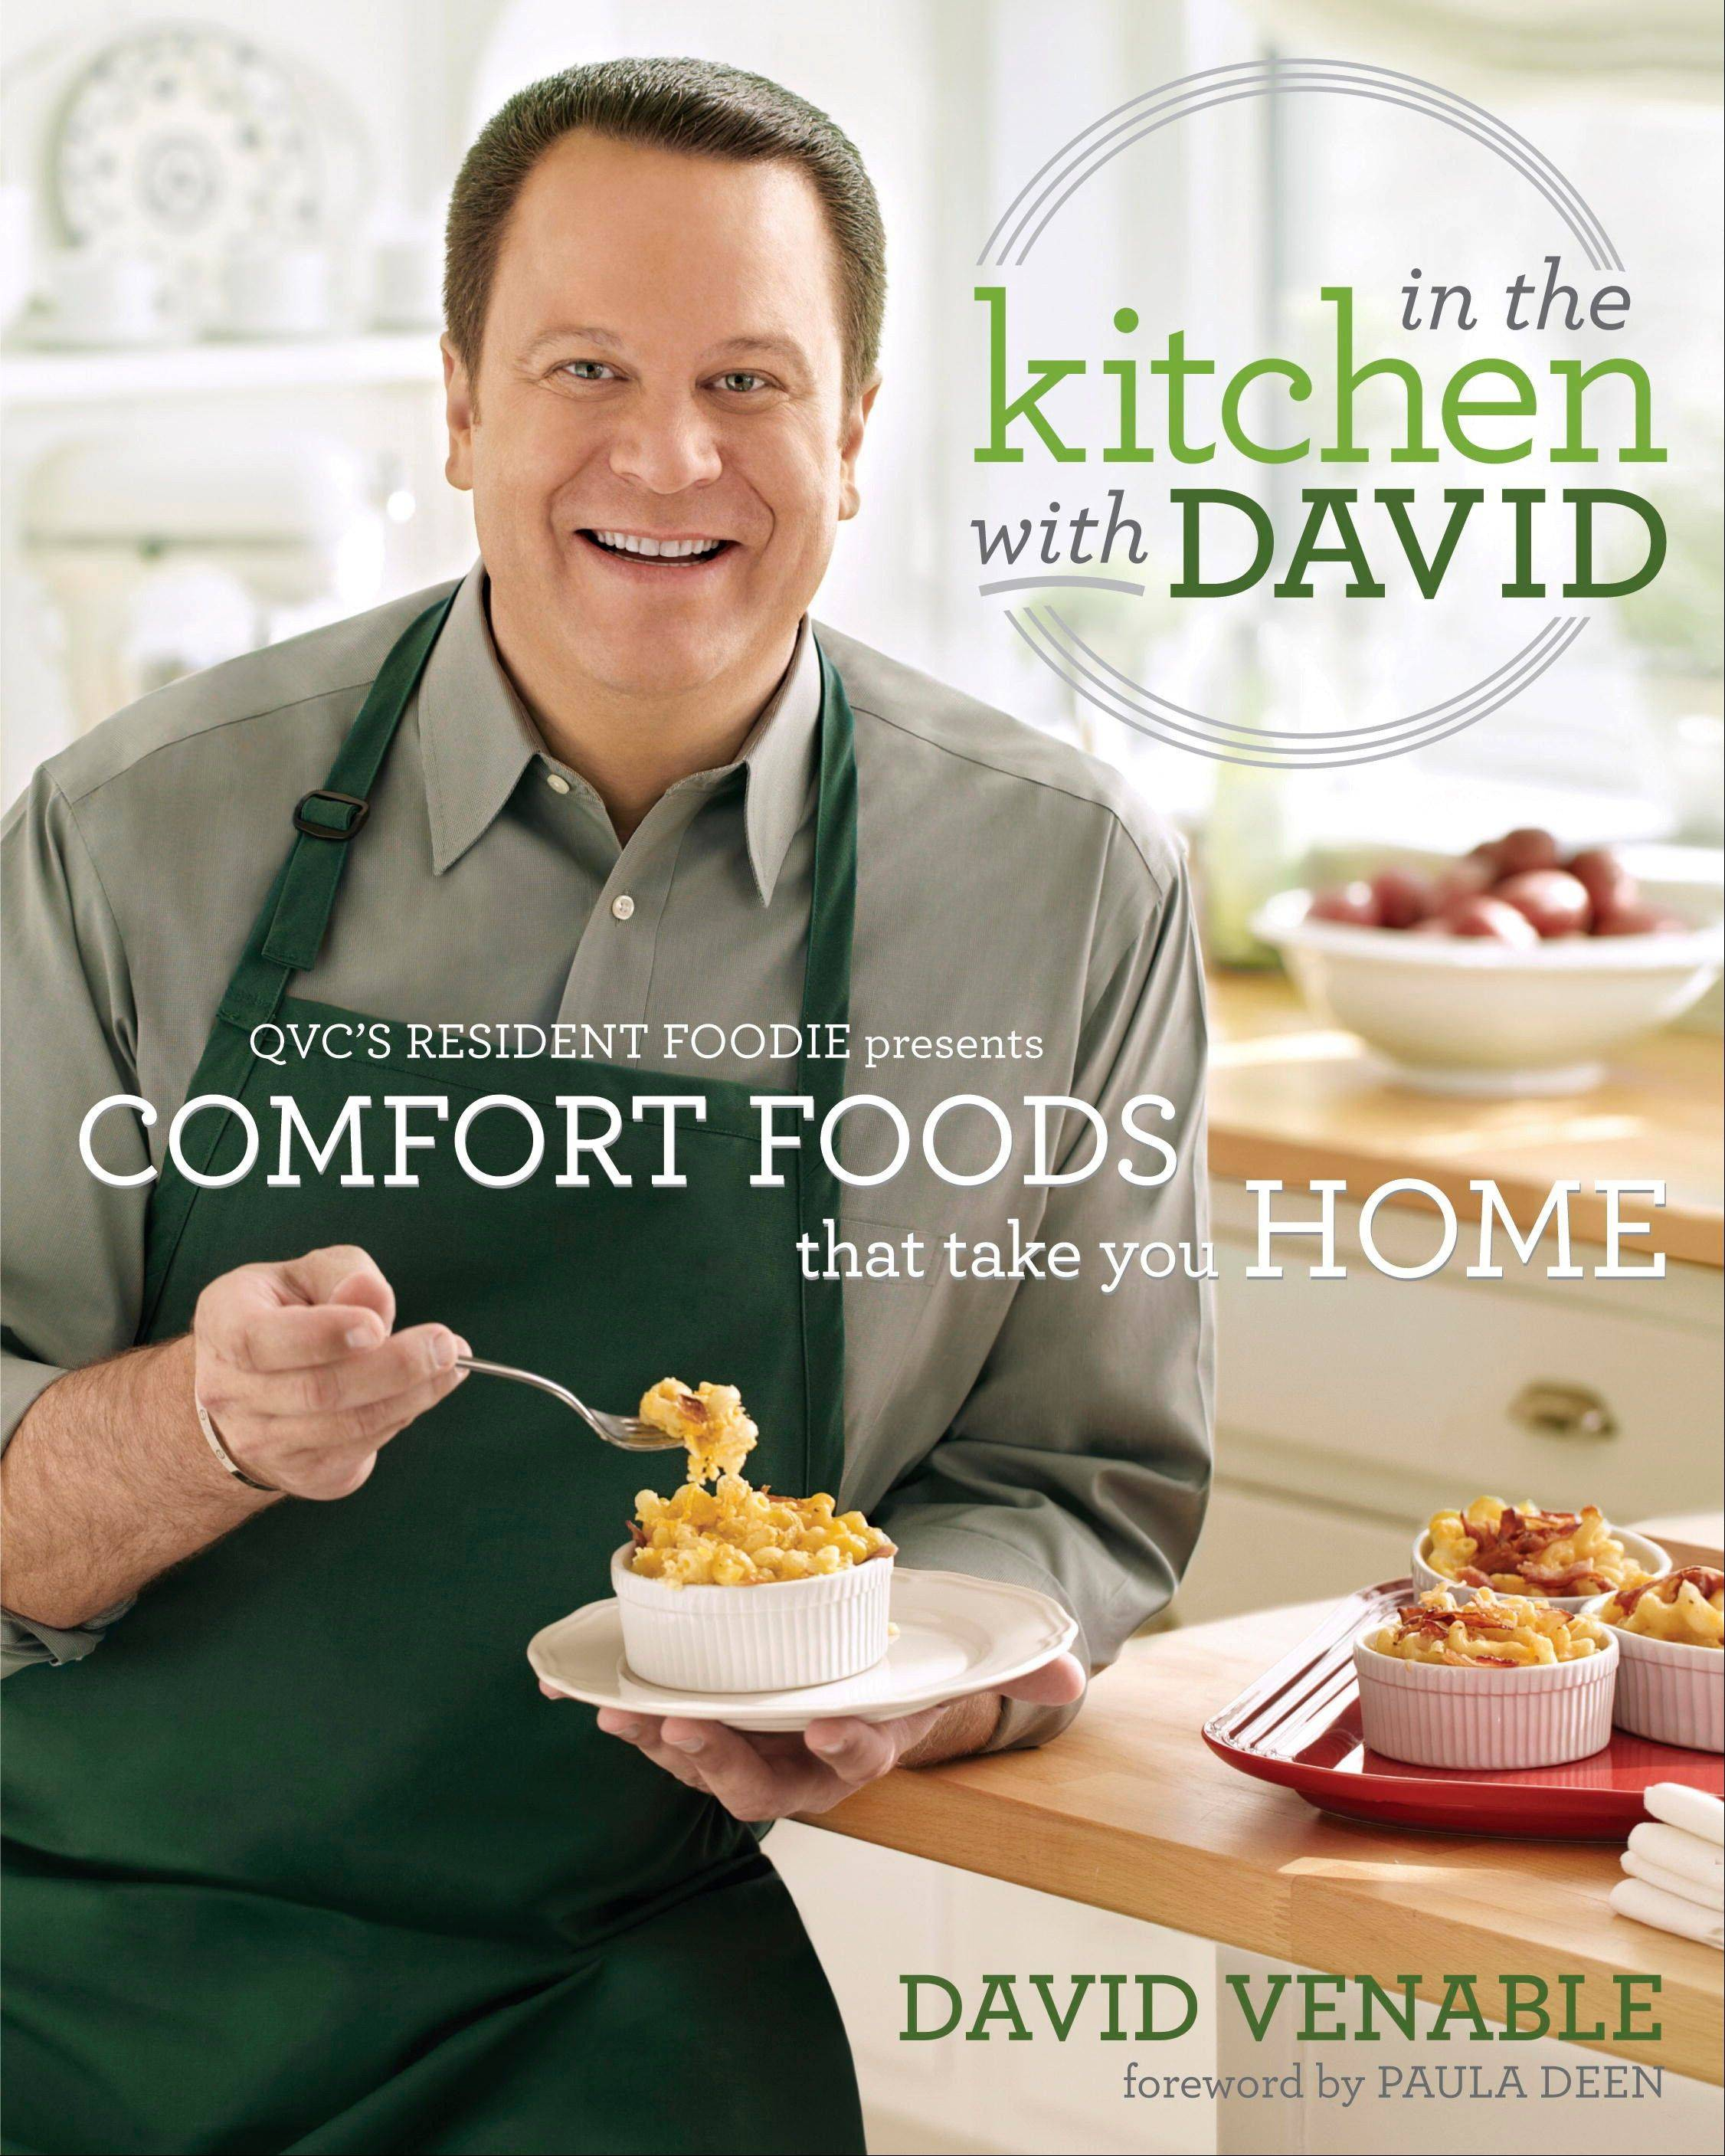 �In the Kitchen with David� by David Venable